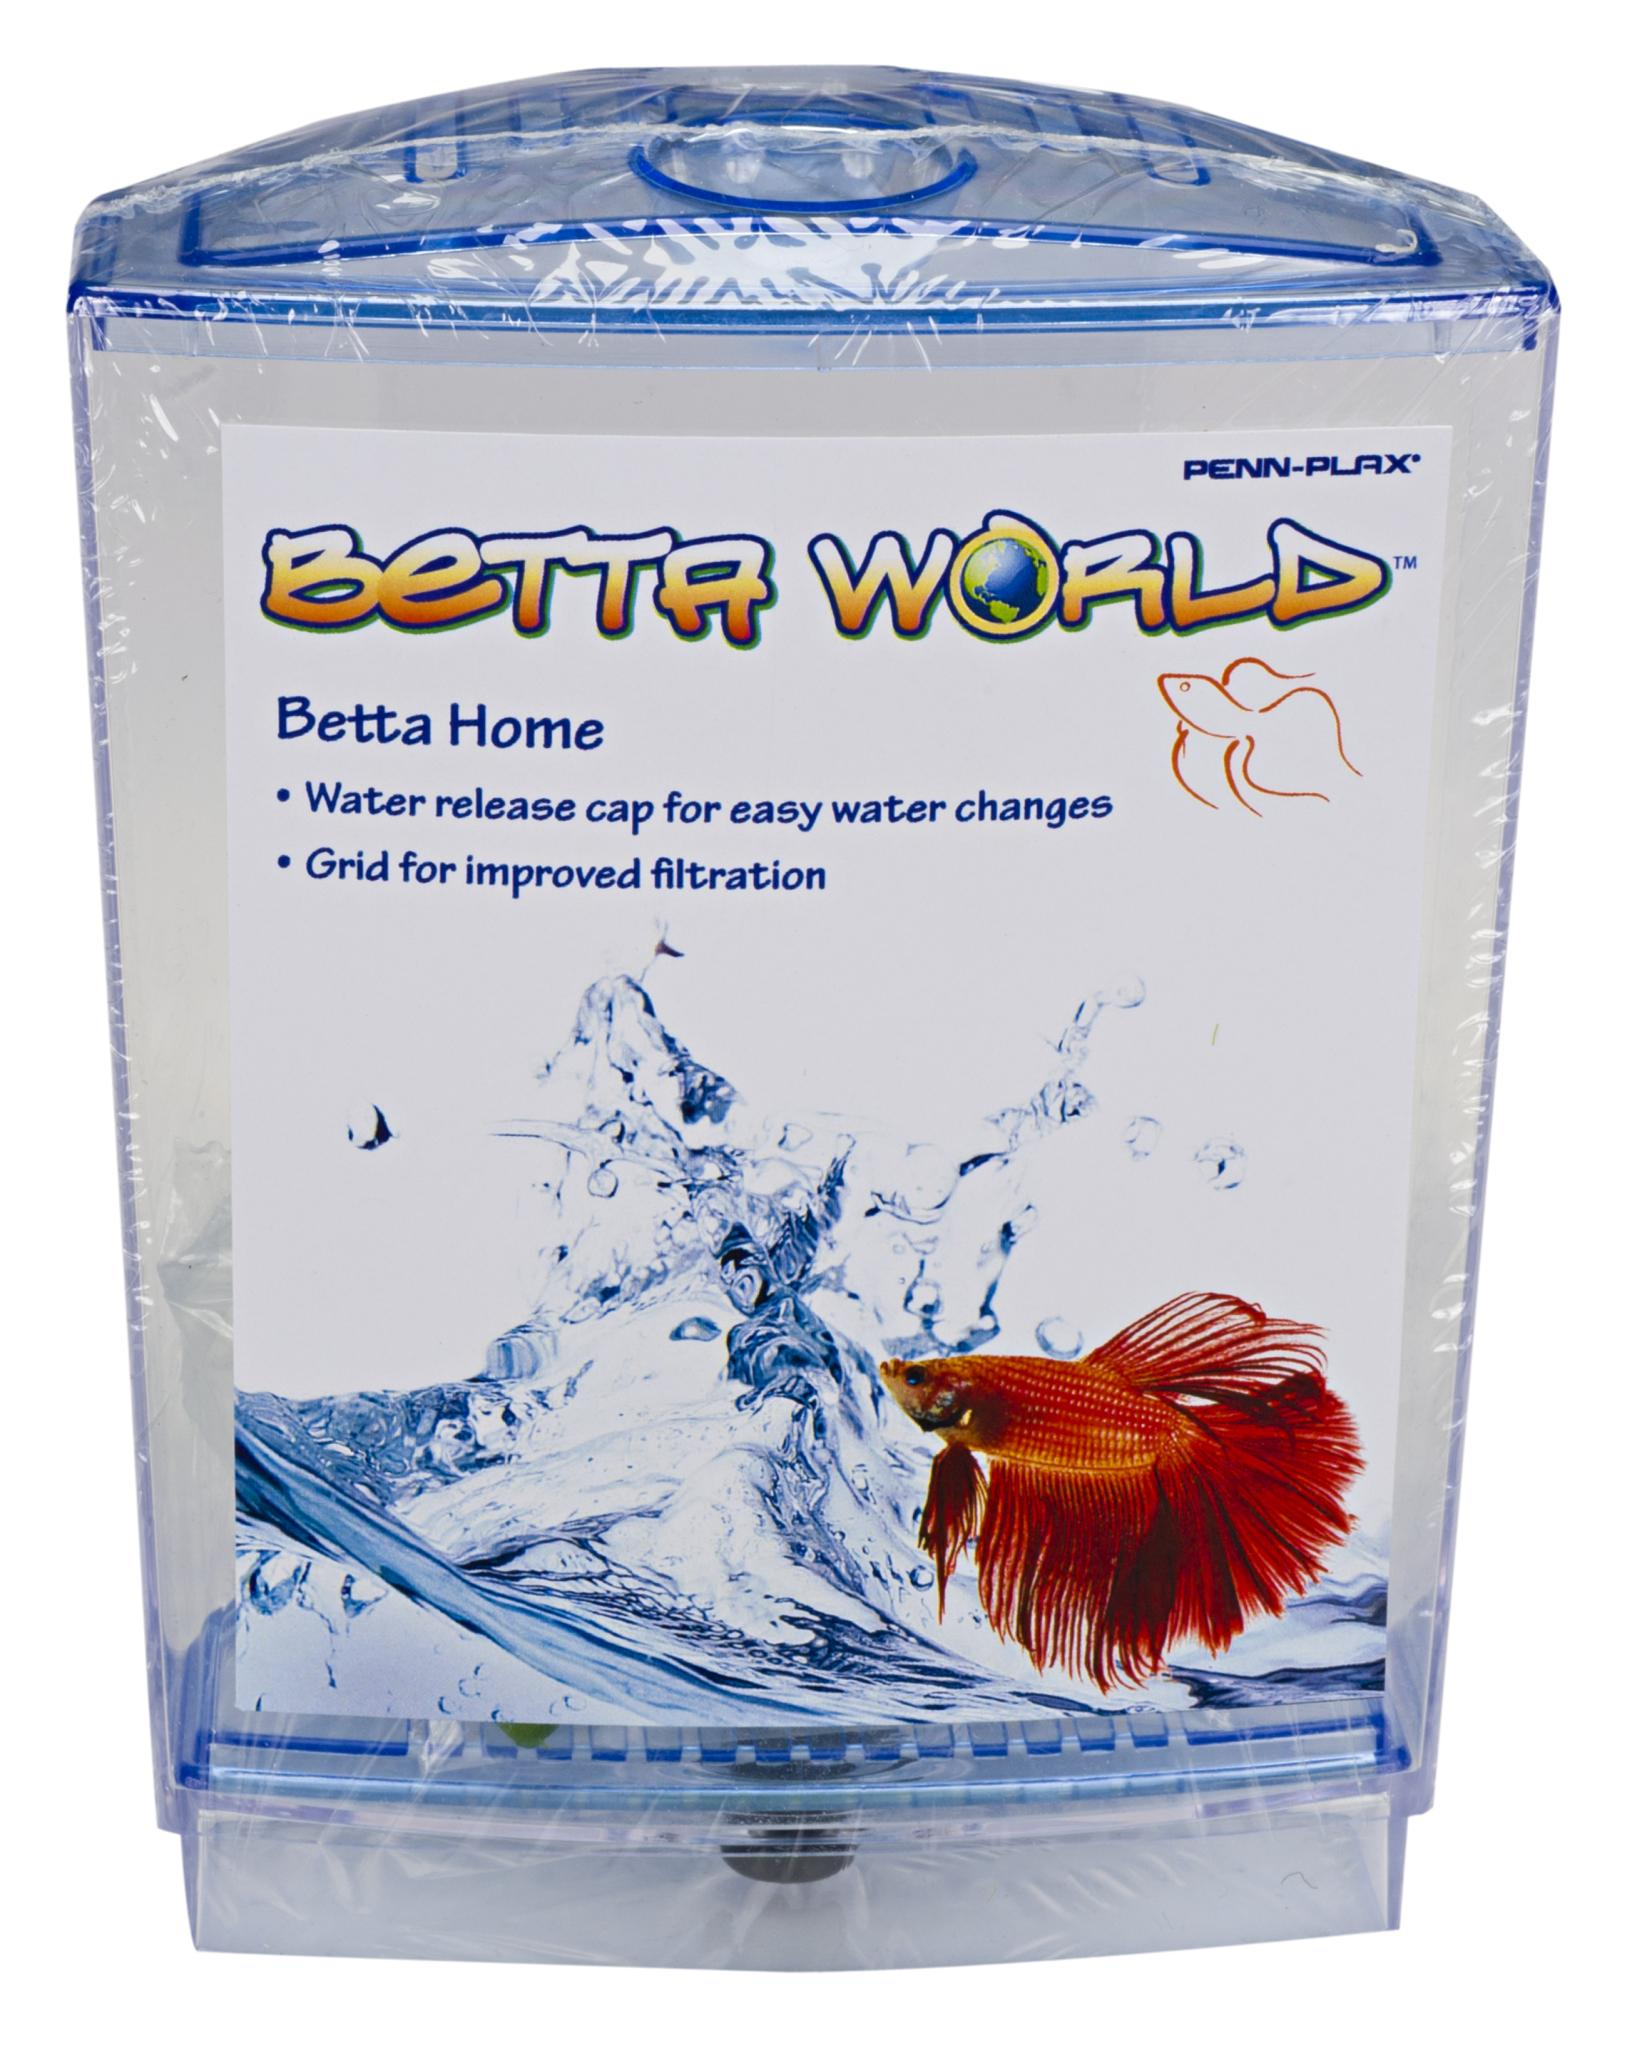 Penn plax betta aquarium tank kit pet supplies for Betta fish tanks amazon